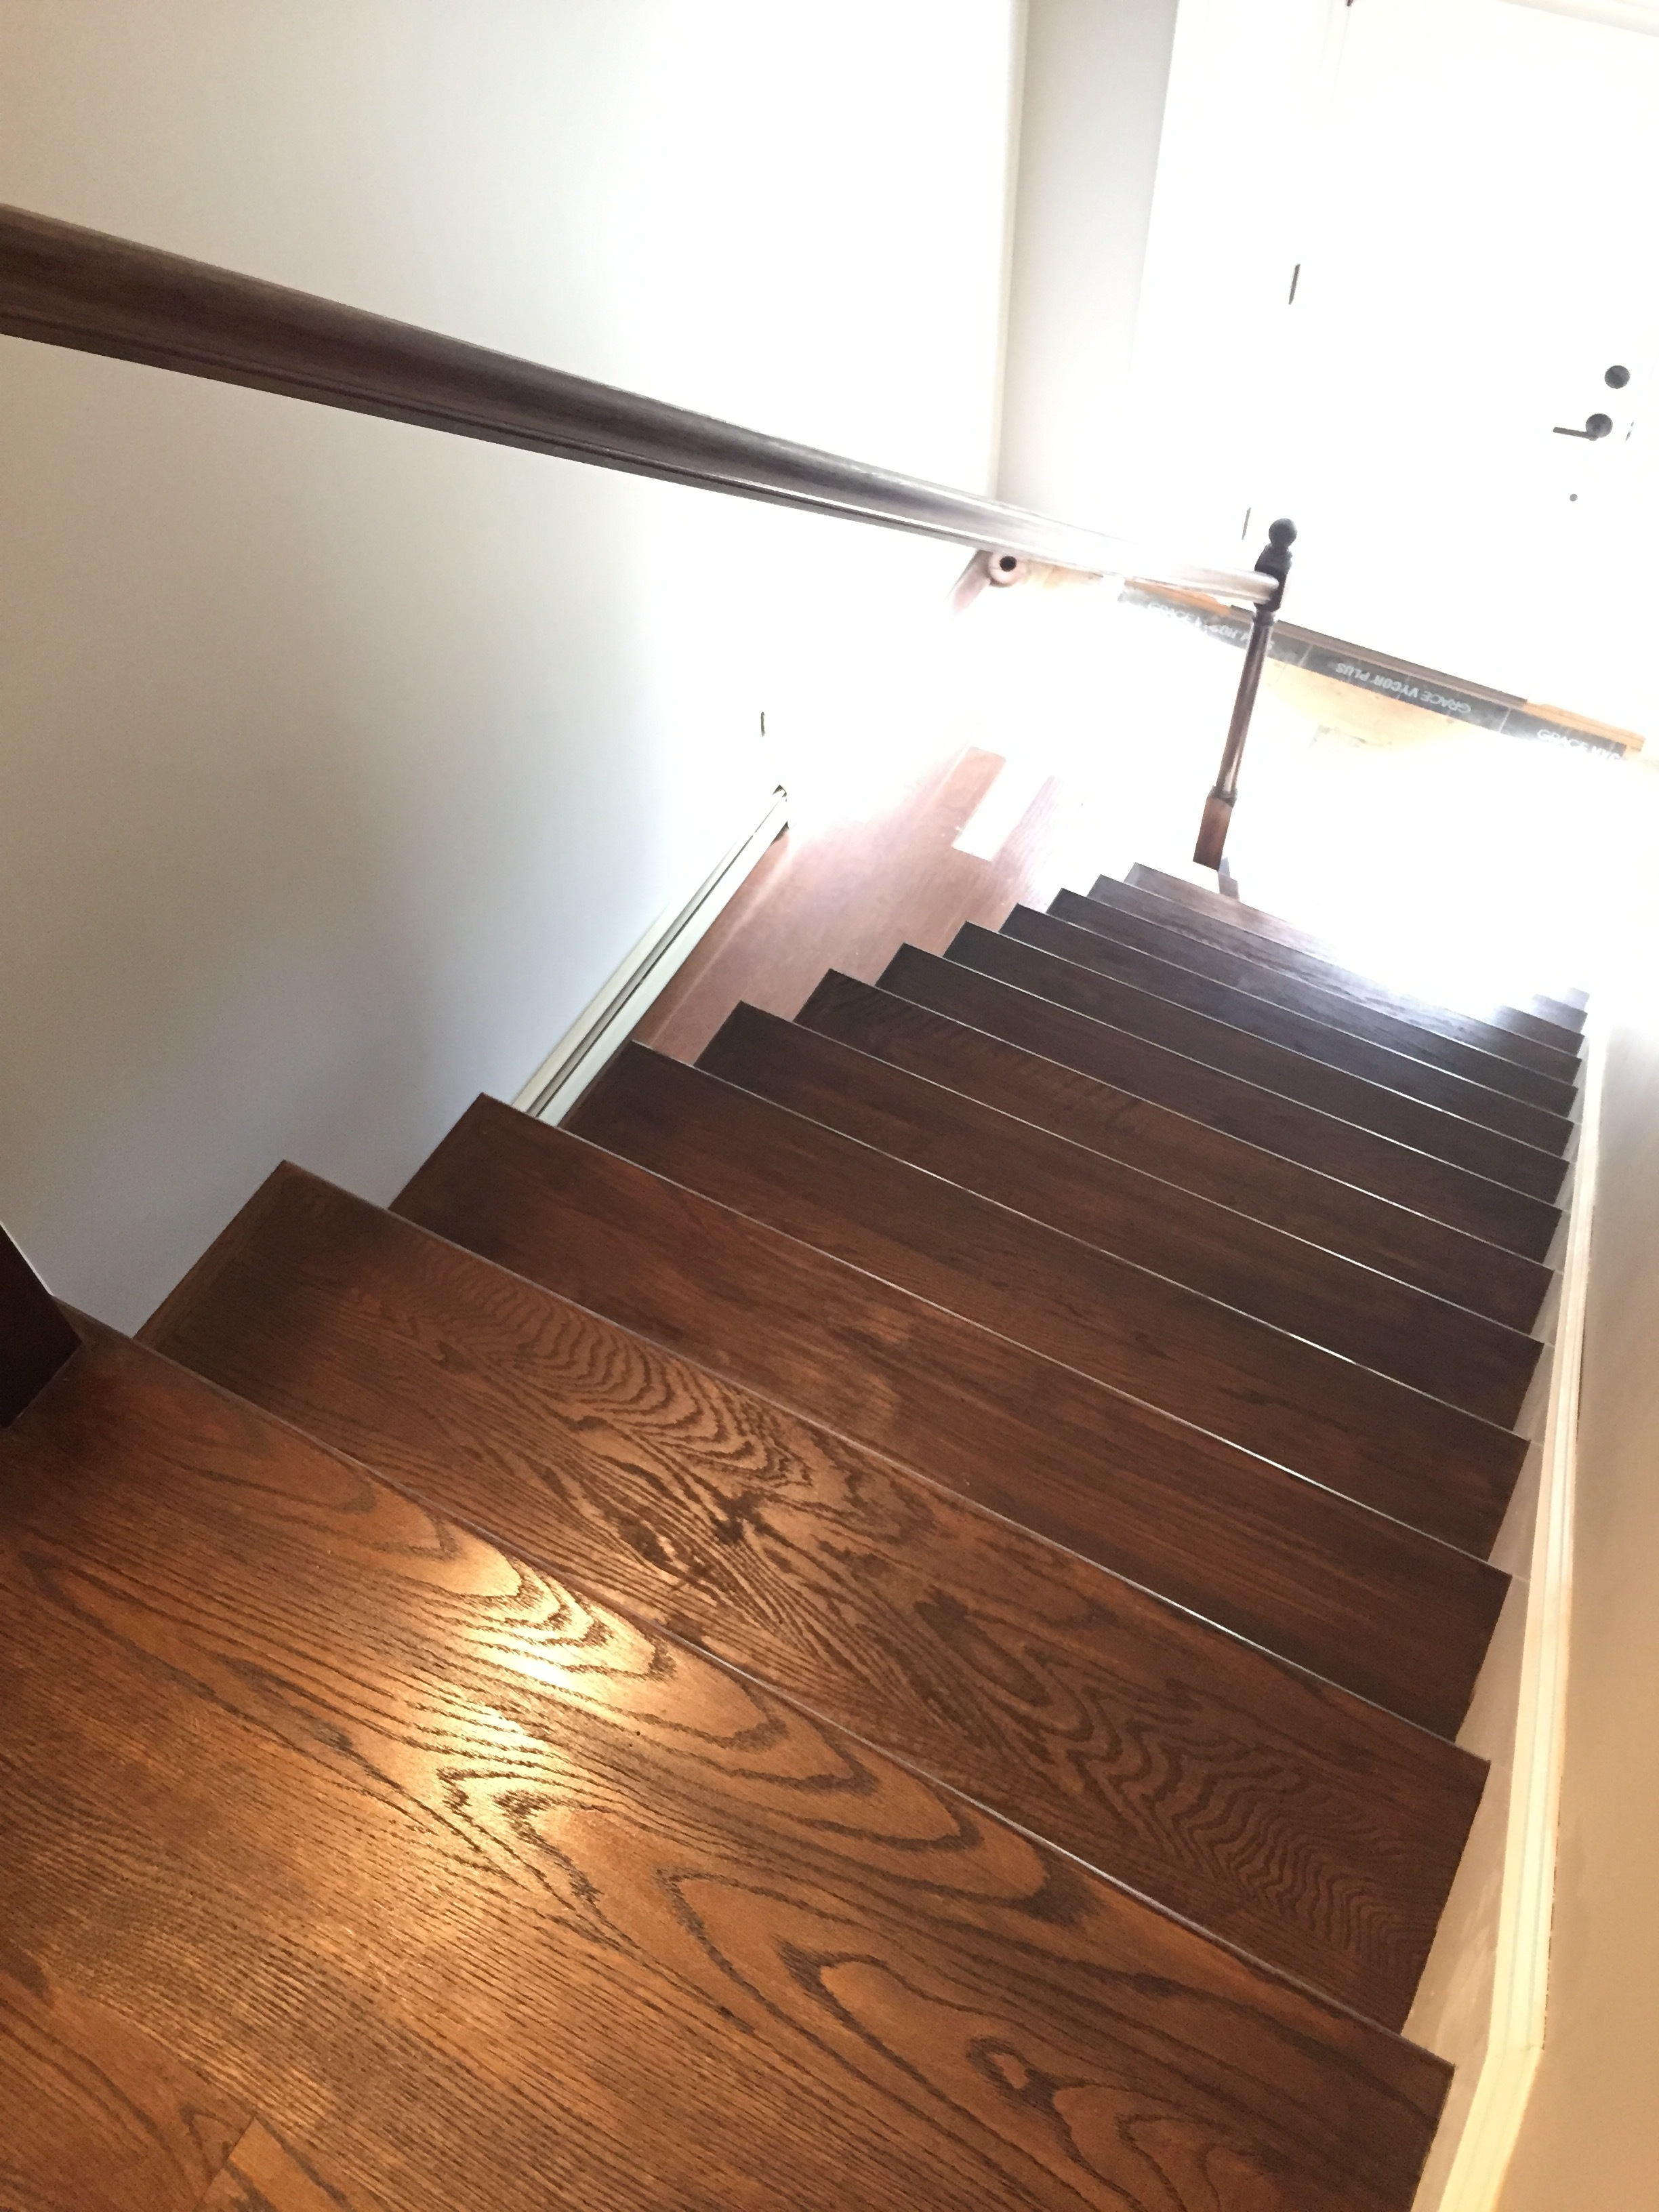 FINISHED - Red Oak - 3 coats of Minwax Jacobean 2750 - No Poly